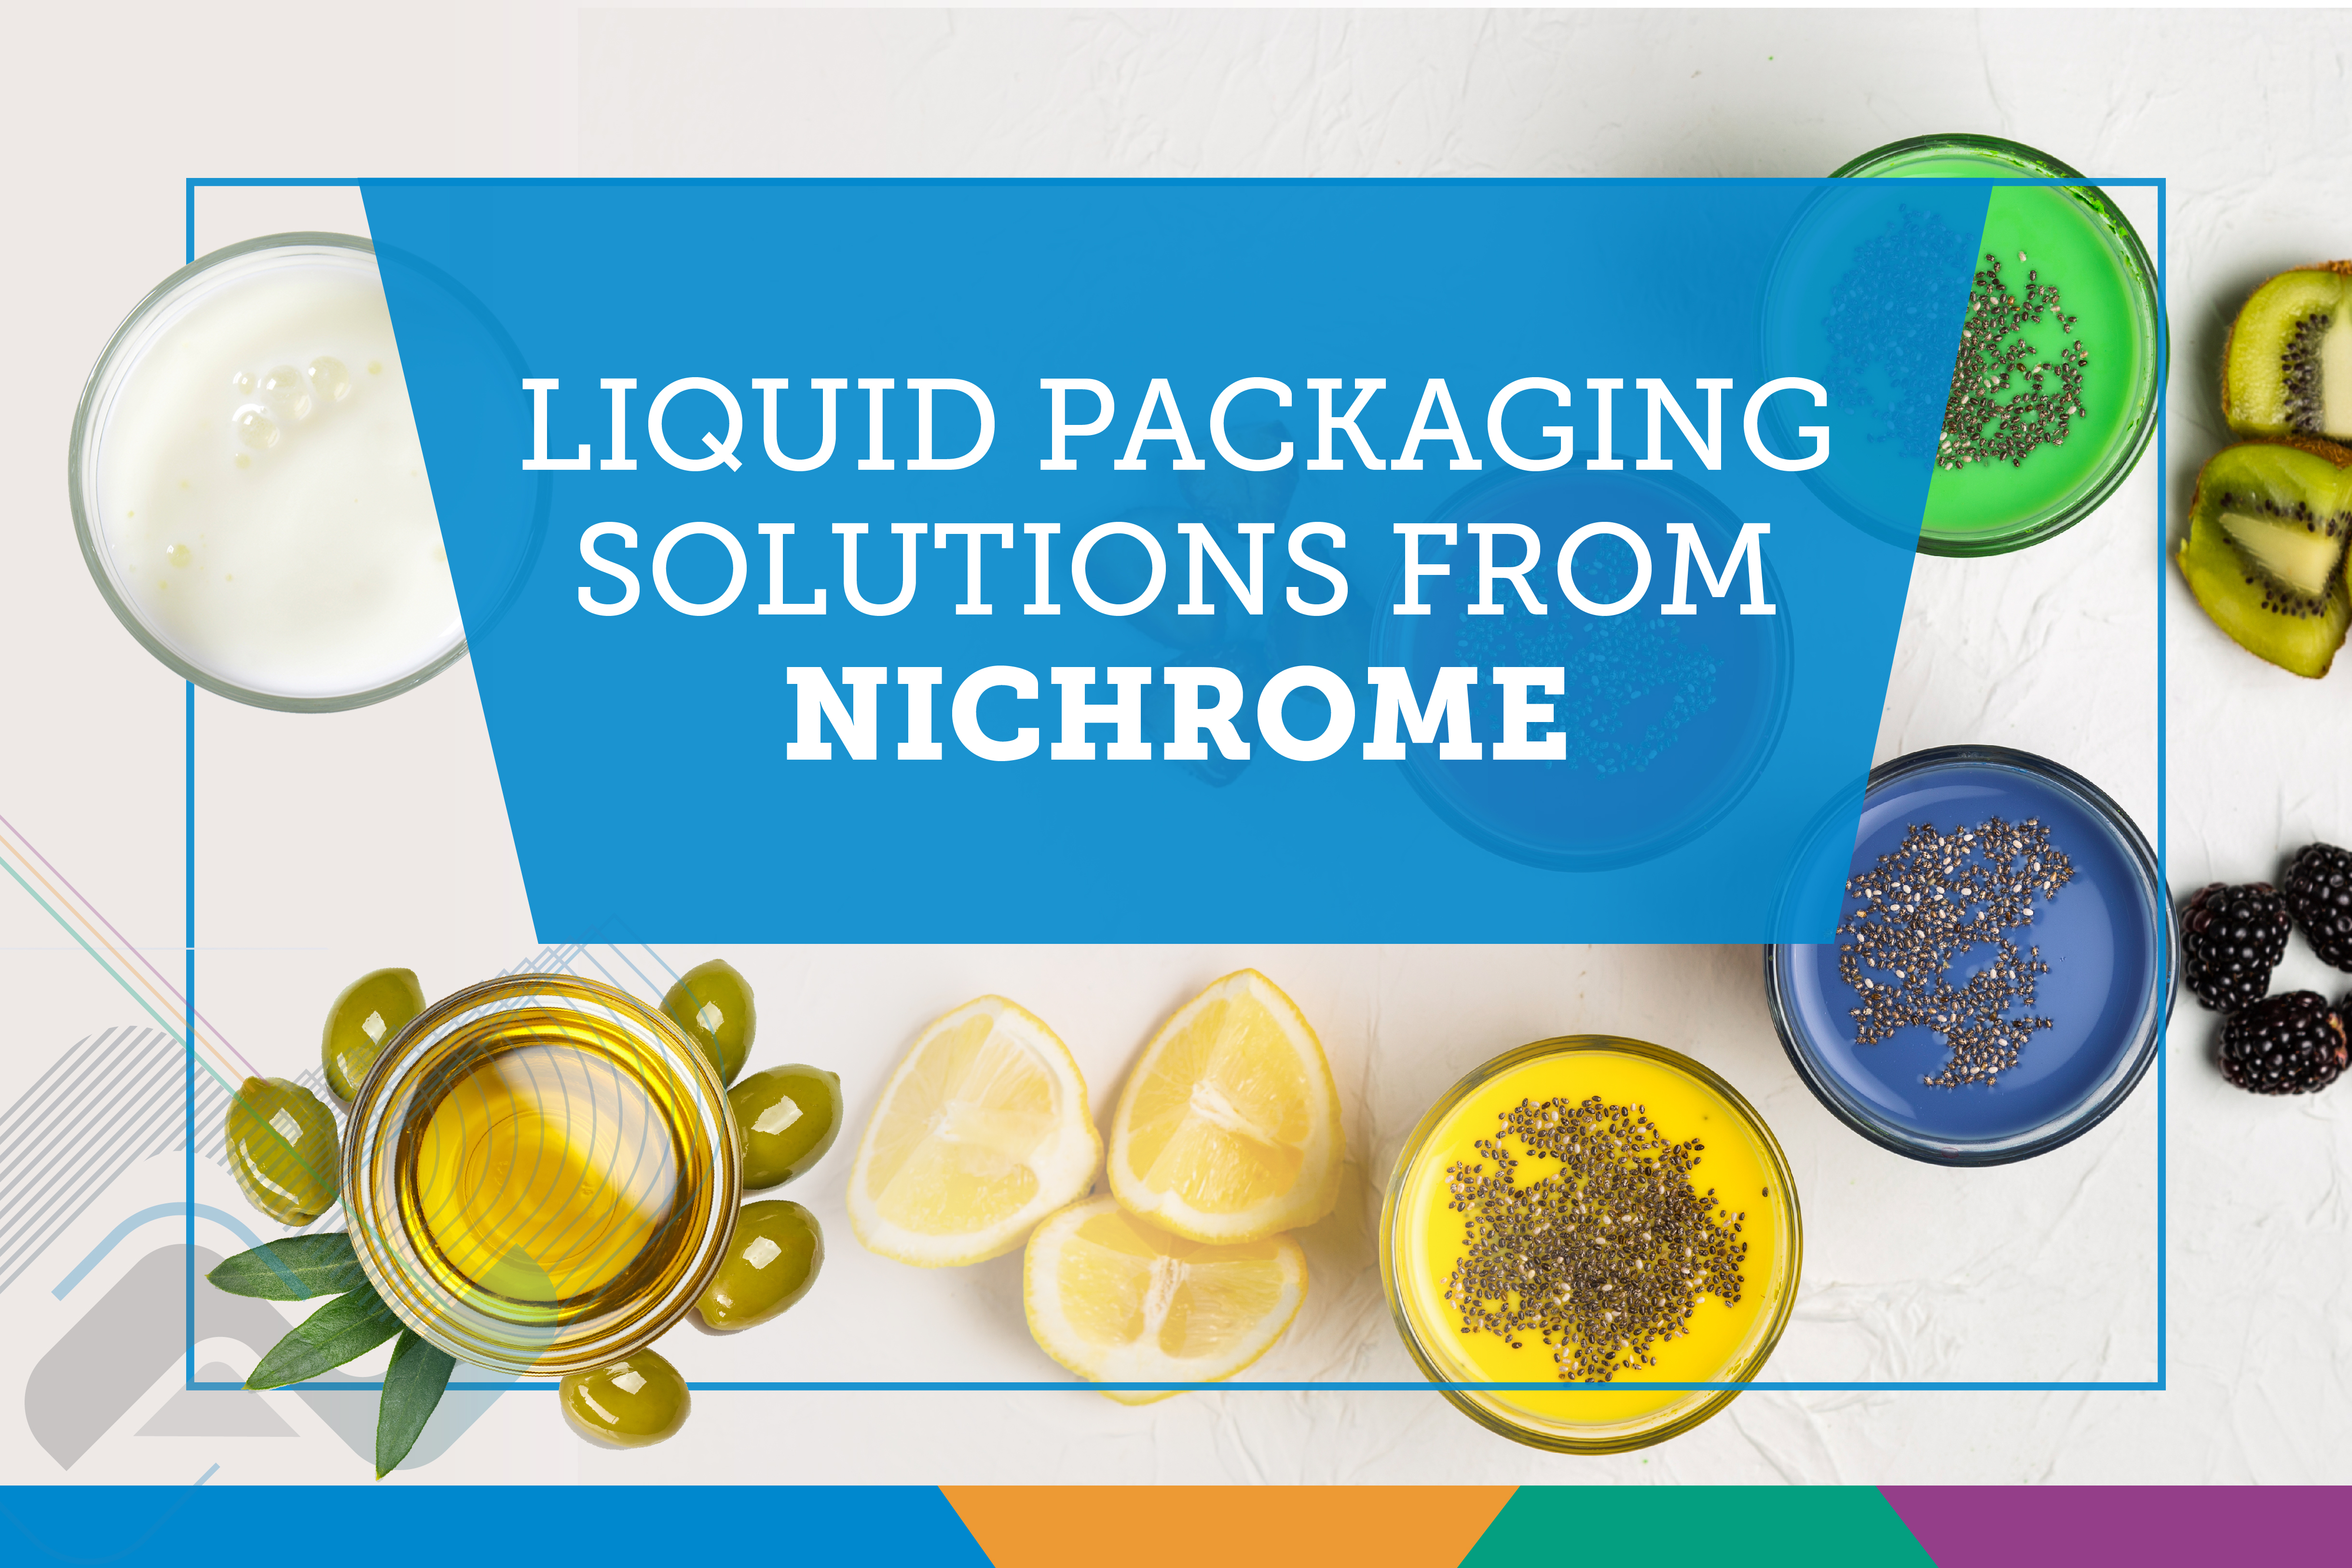 LIQUID PACKAGING SOLUTIONS FROM NICHROME